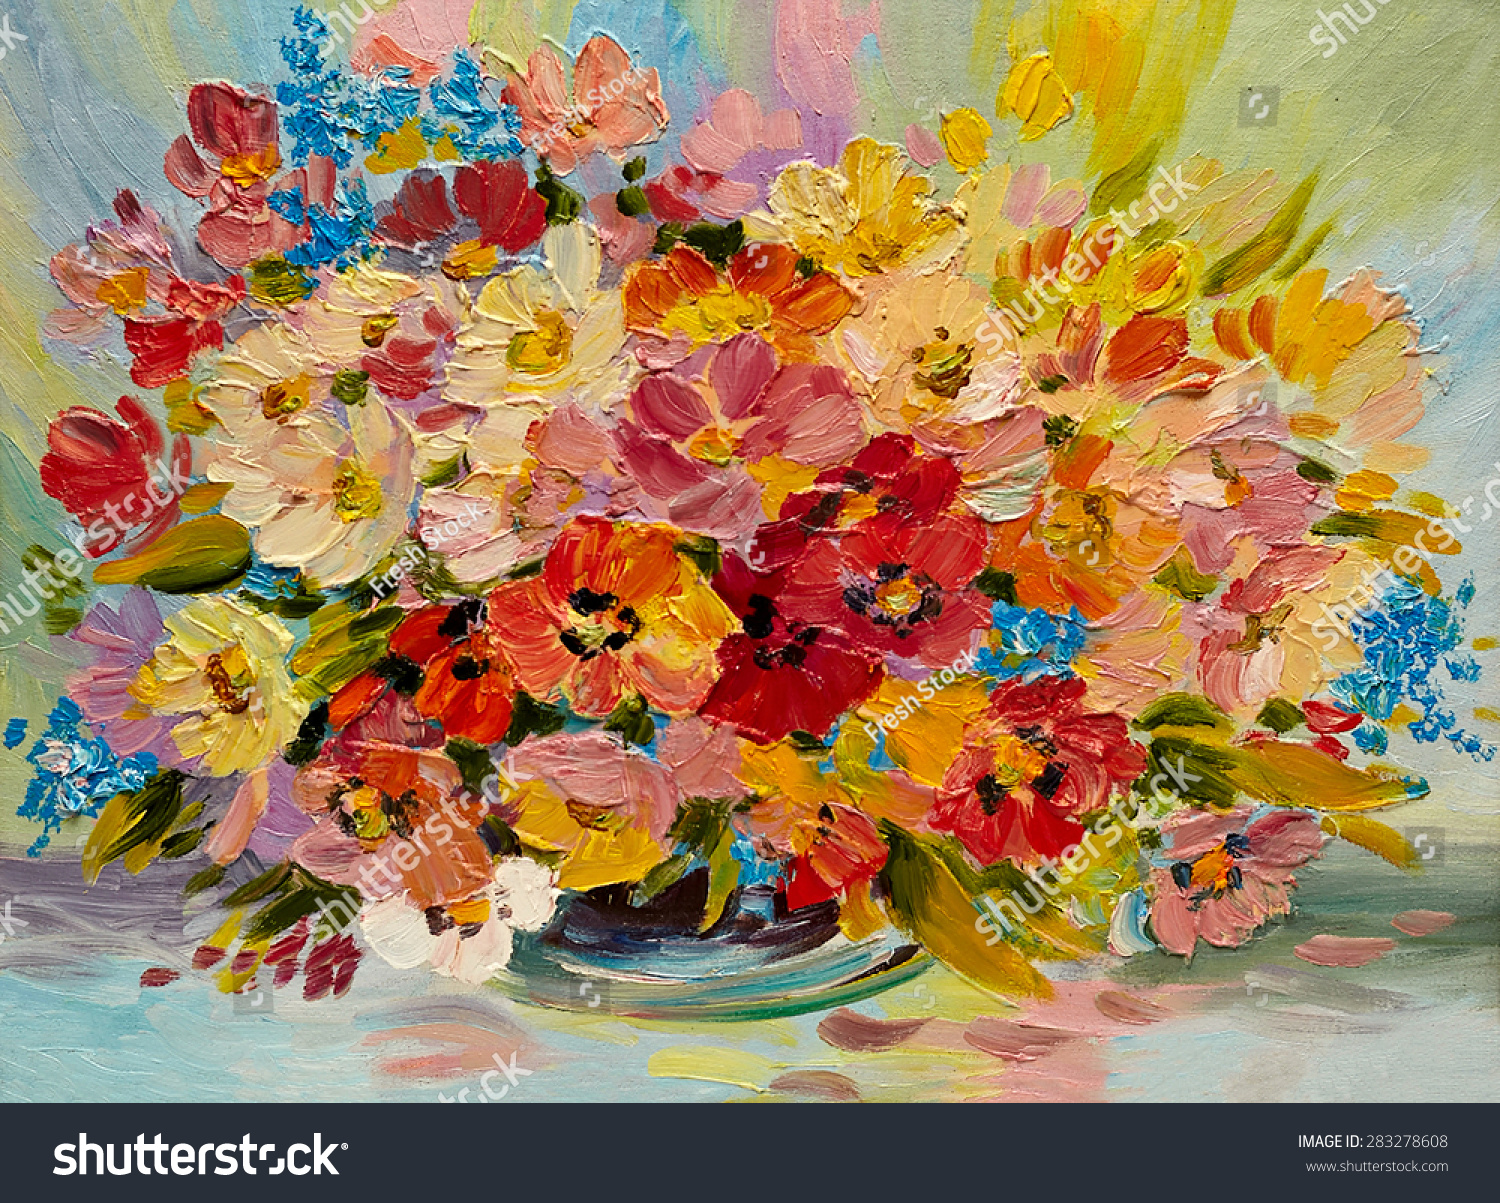 Oil Painting Colorful Bouquet Summer Flowers Stock Illustration ...